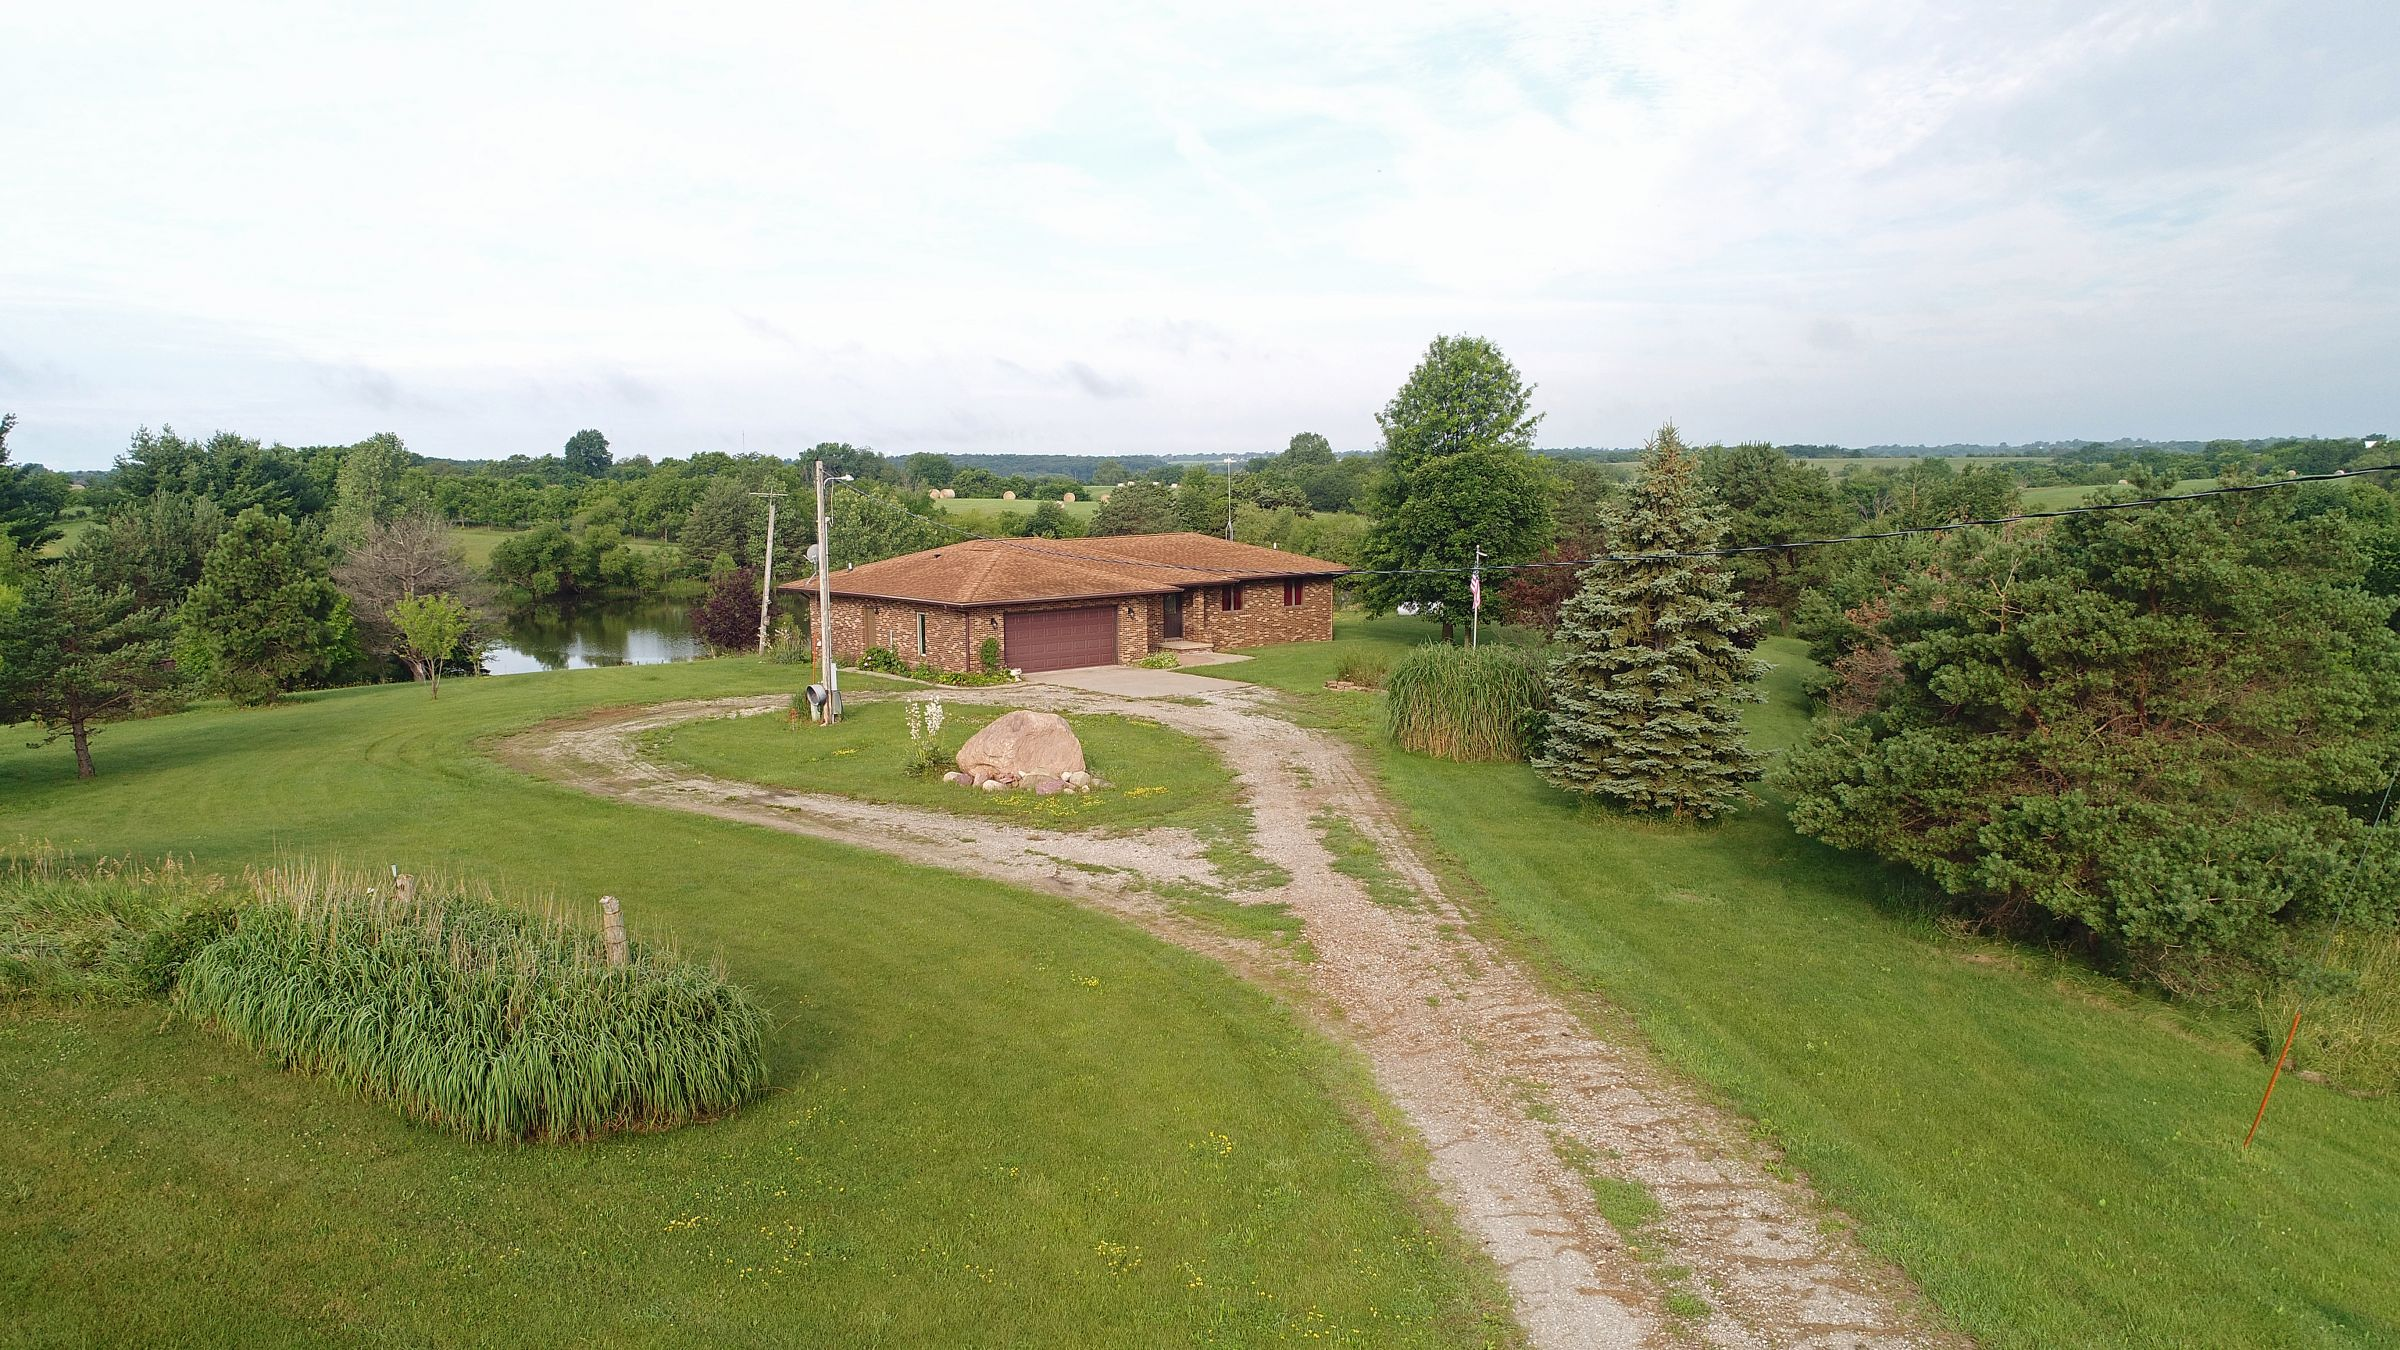 residential-lucas-county-iowa-9-acres-listing-number-15618-0-2021-06-30-170619.JPG